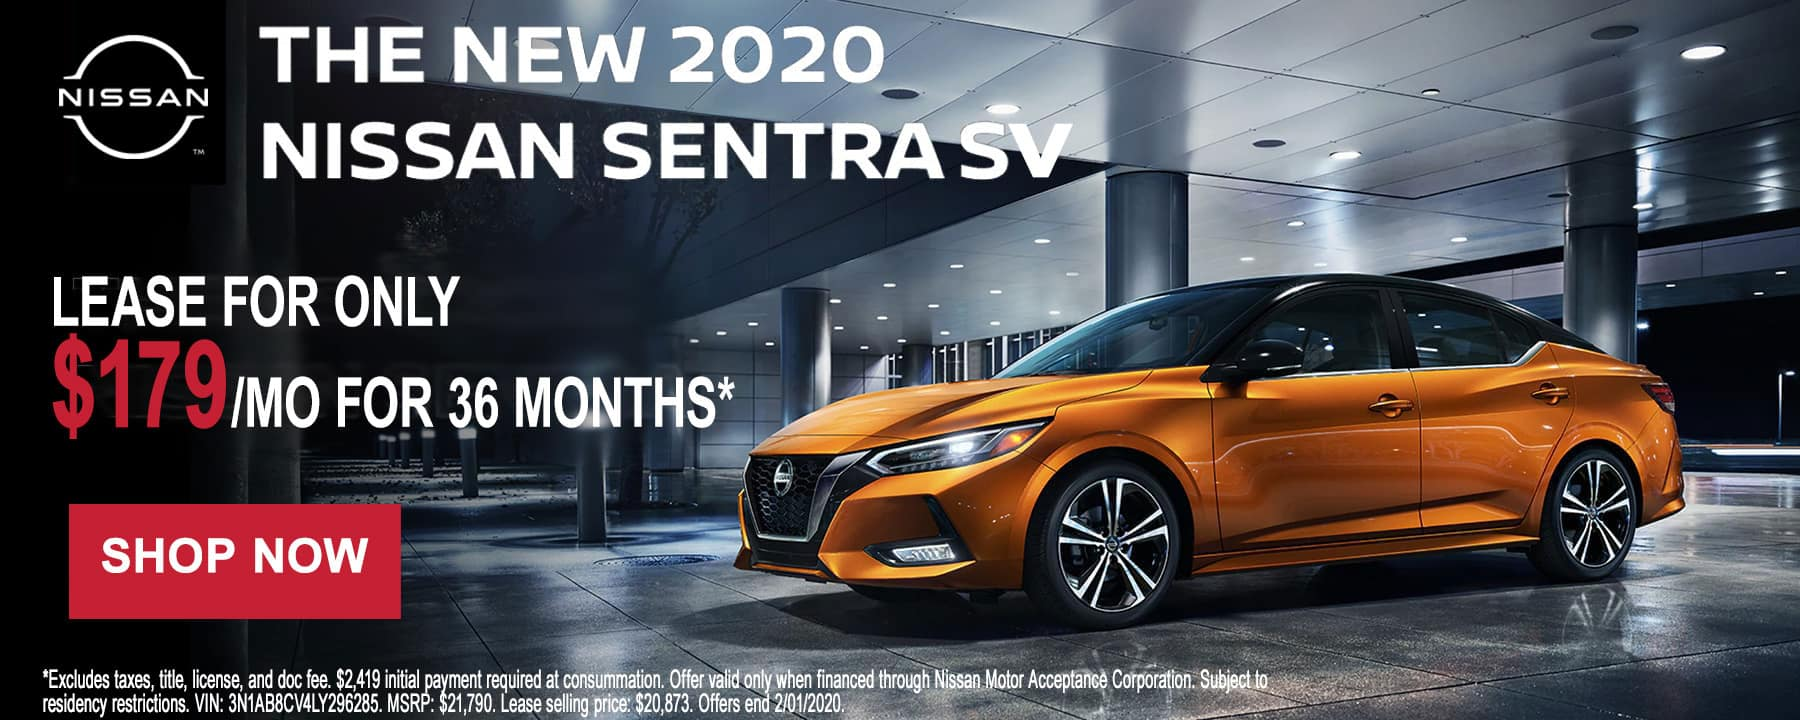 All-New 2020 Nissan Sentra January Lease Deal at Star Nissan